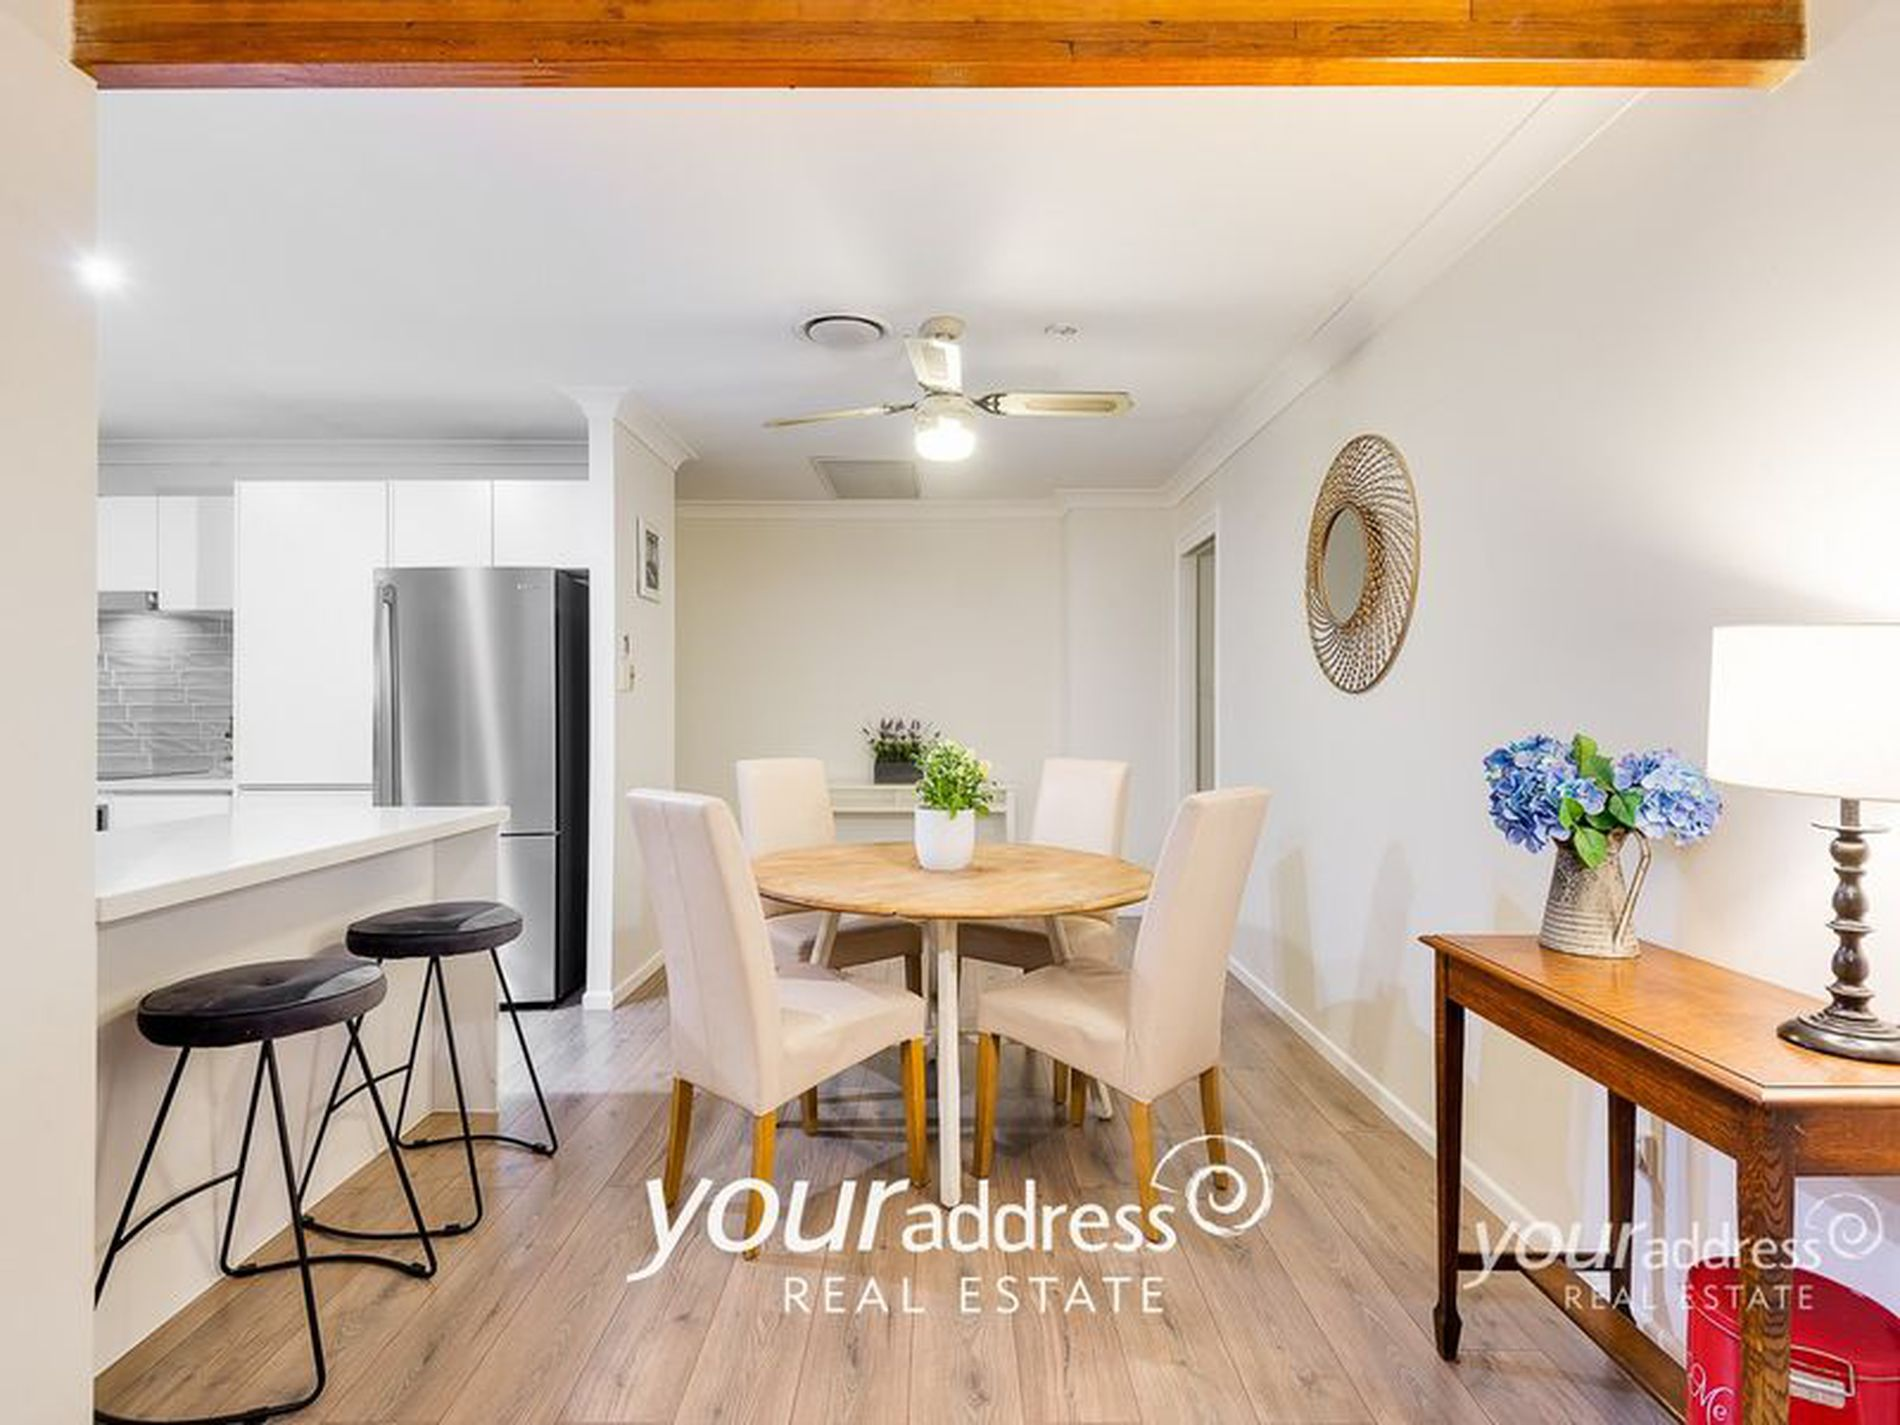 11-13 Heathcote Court, Munruben